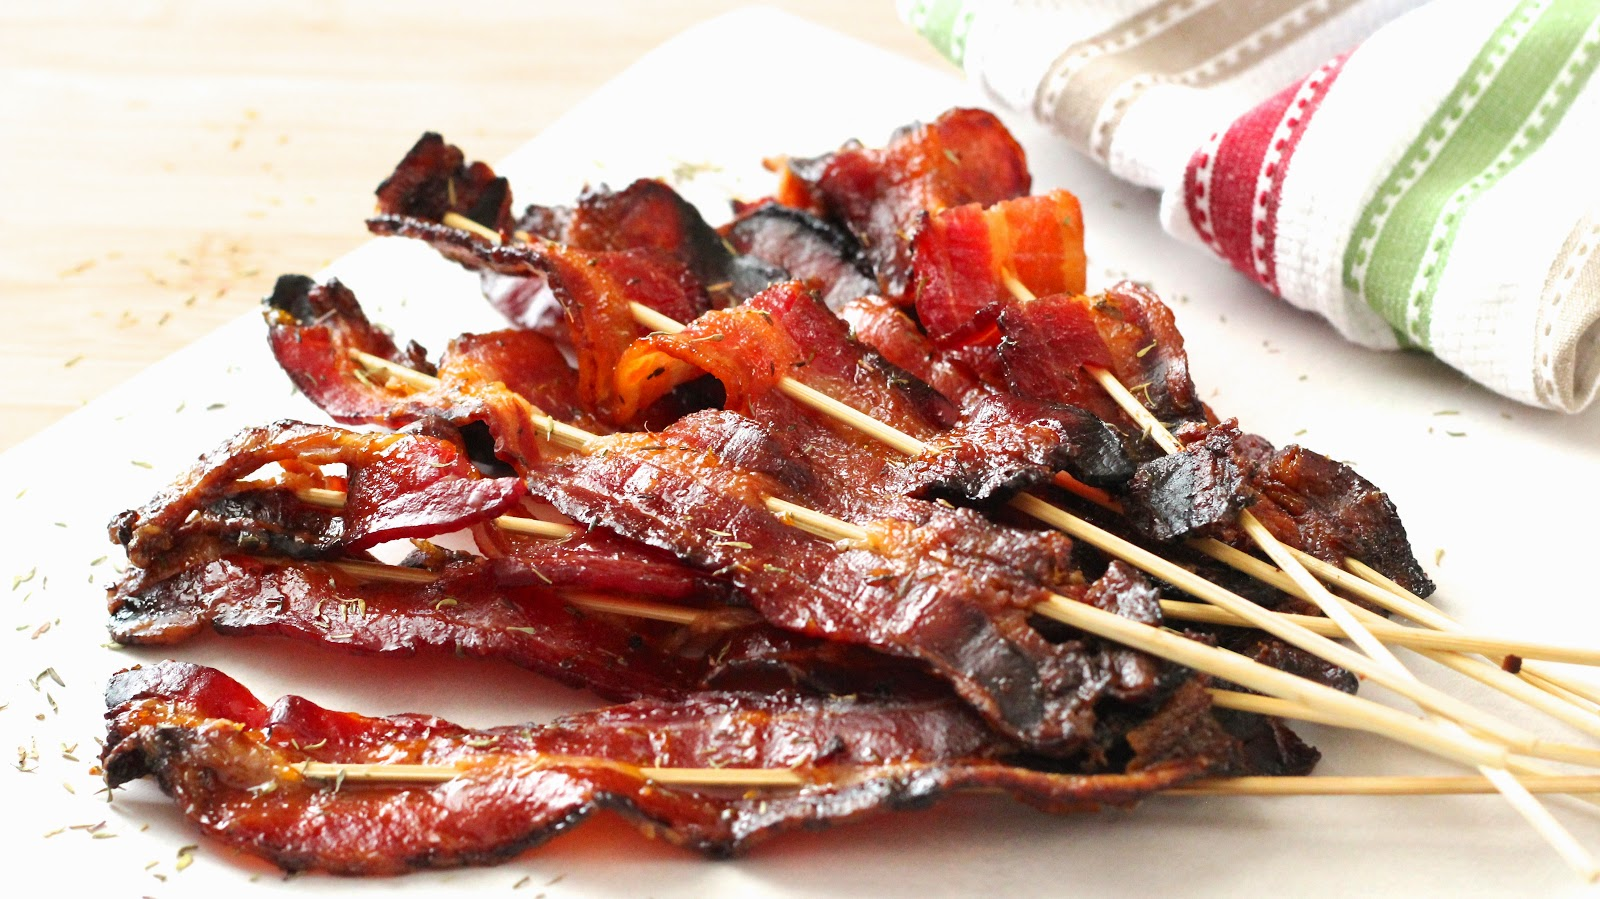 Apricot Thyme Glazed Bacon Sticks from InGoodFlavour